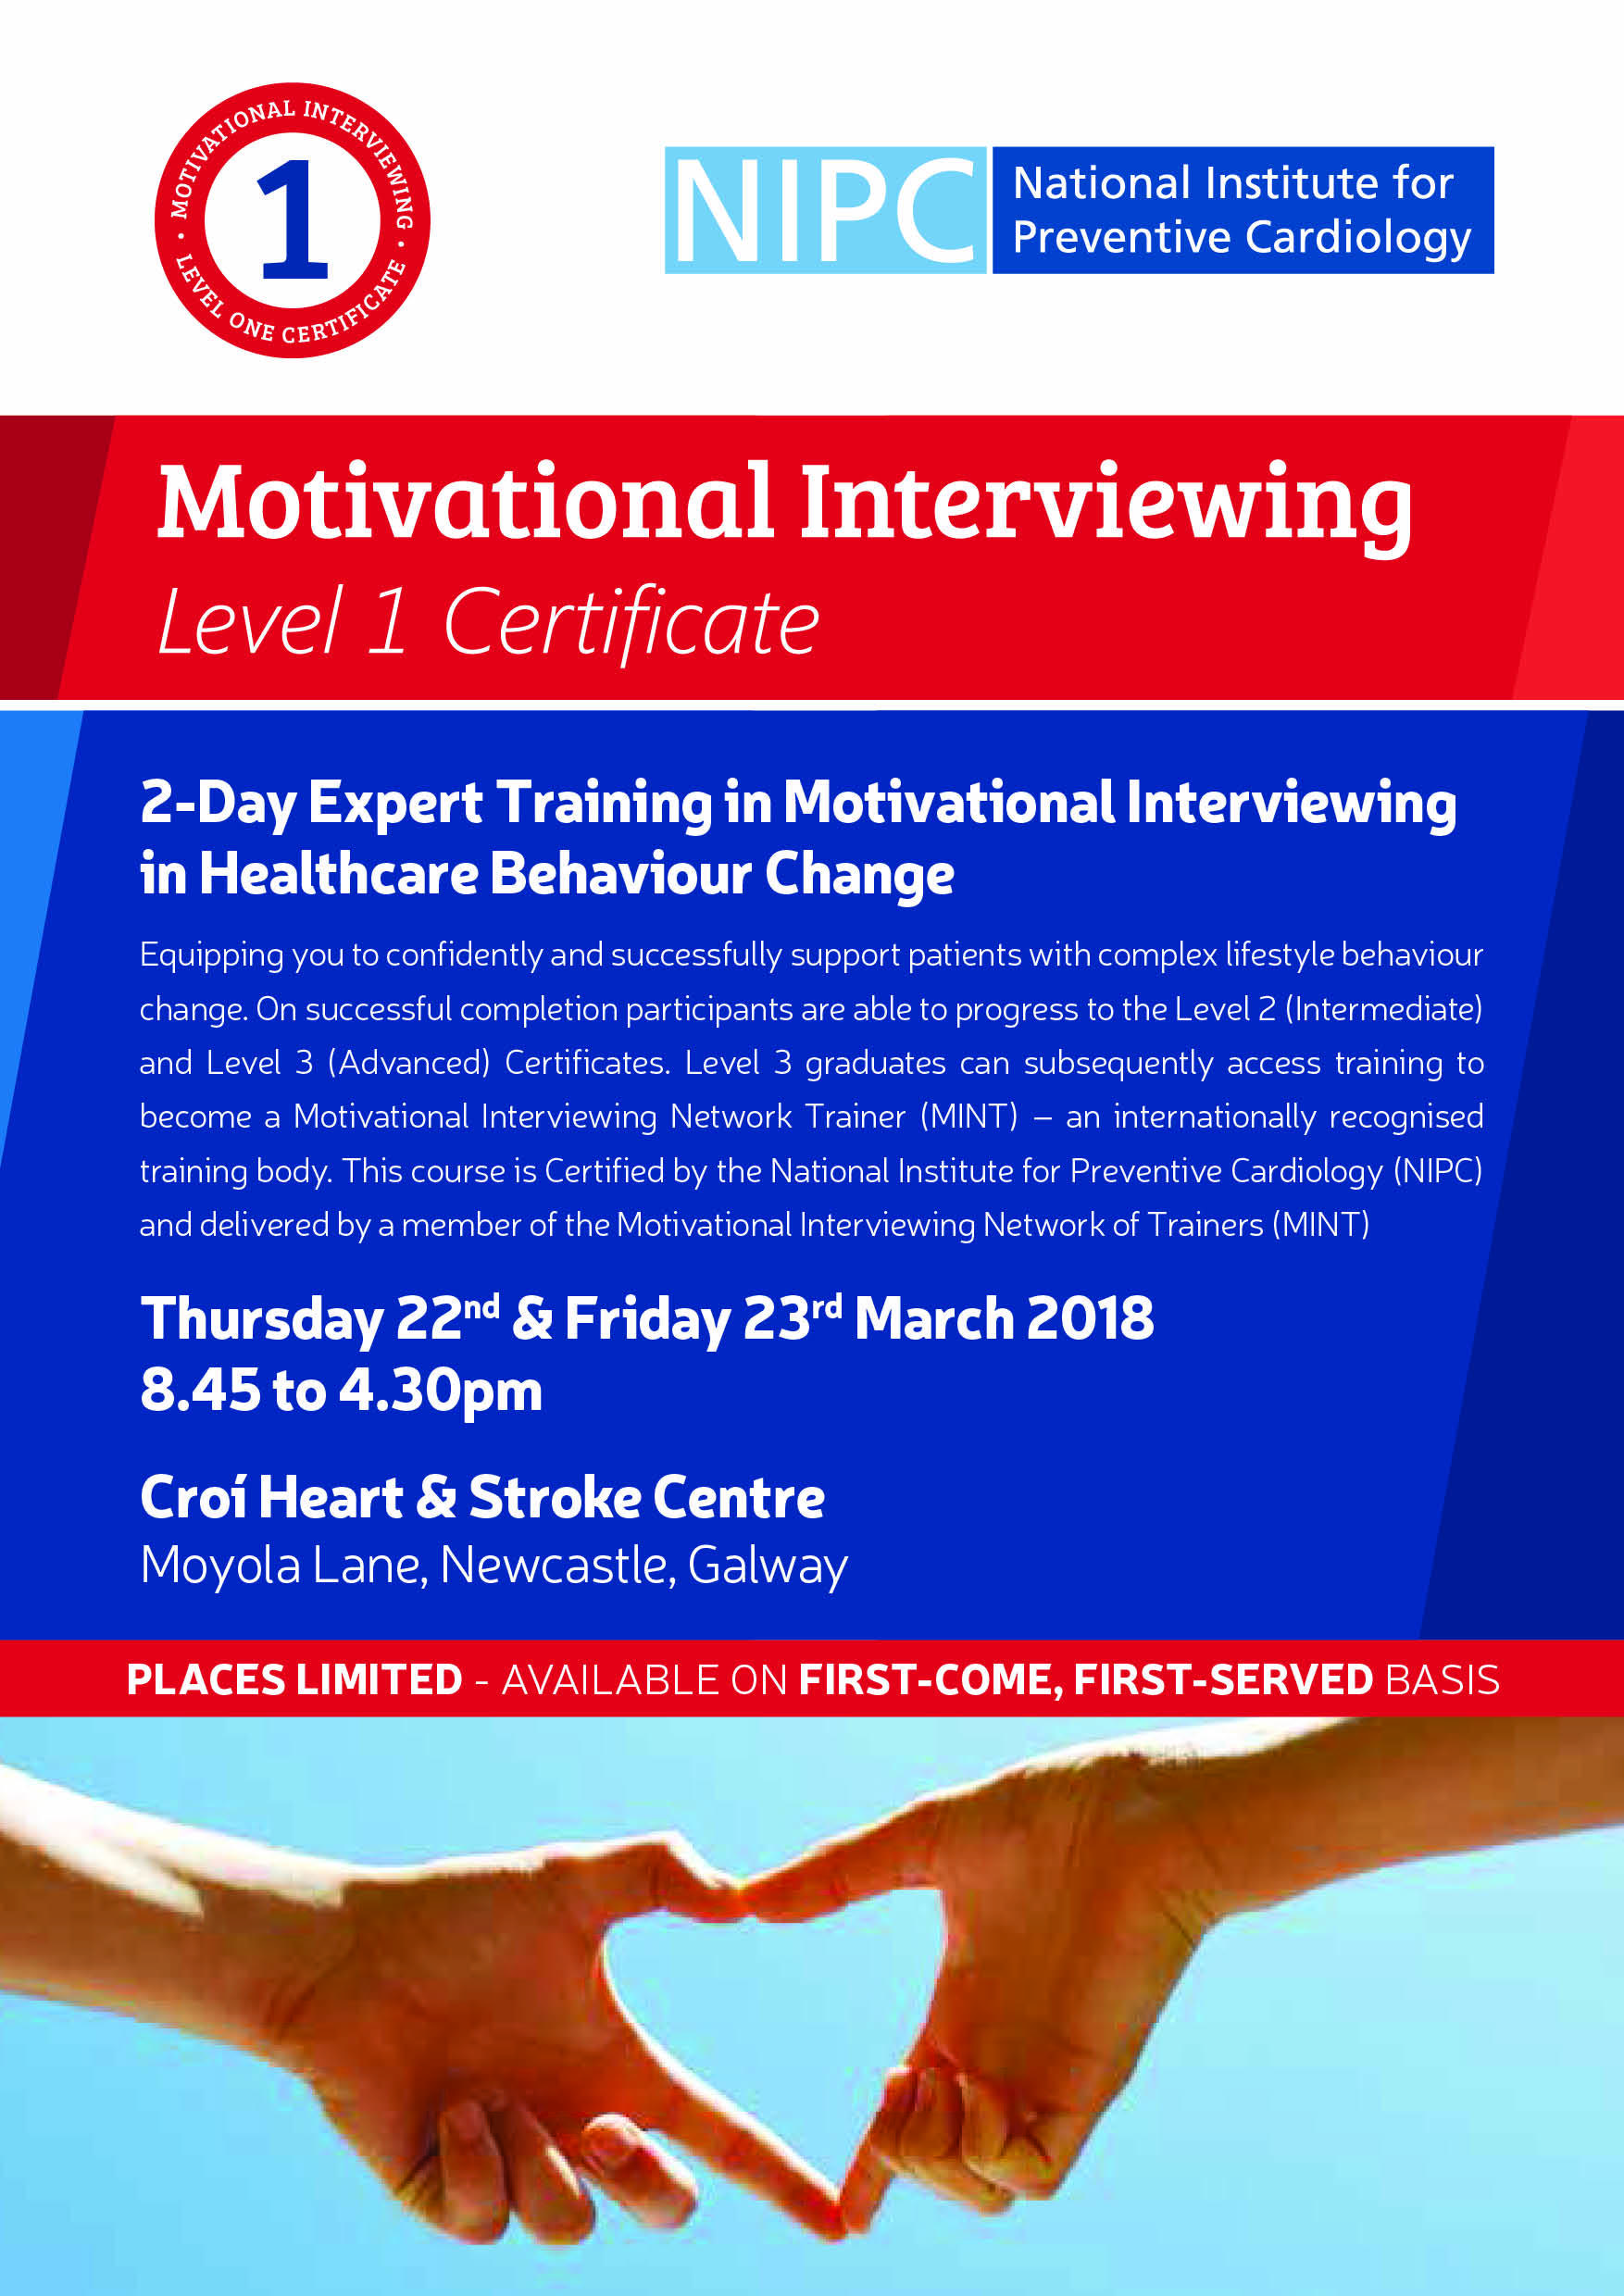 Motivational Interviewing Level 1 Certificate 22nd & 23rd March 2018 (Standard Rate)